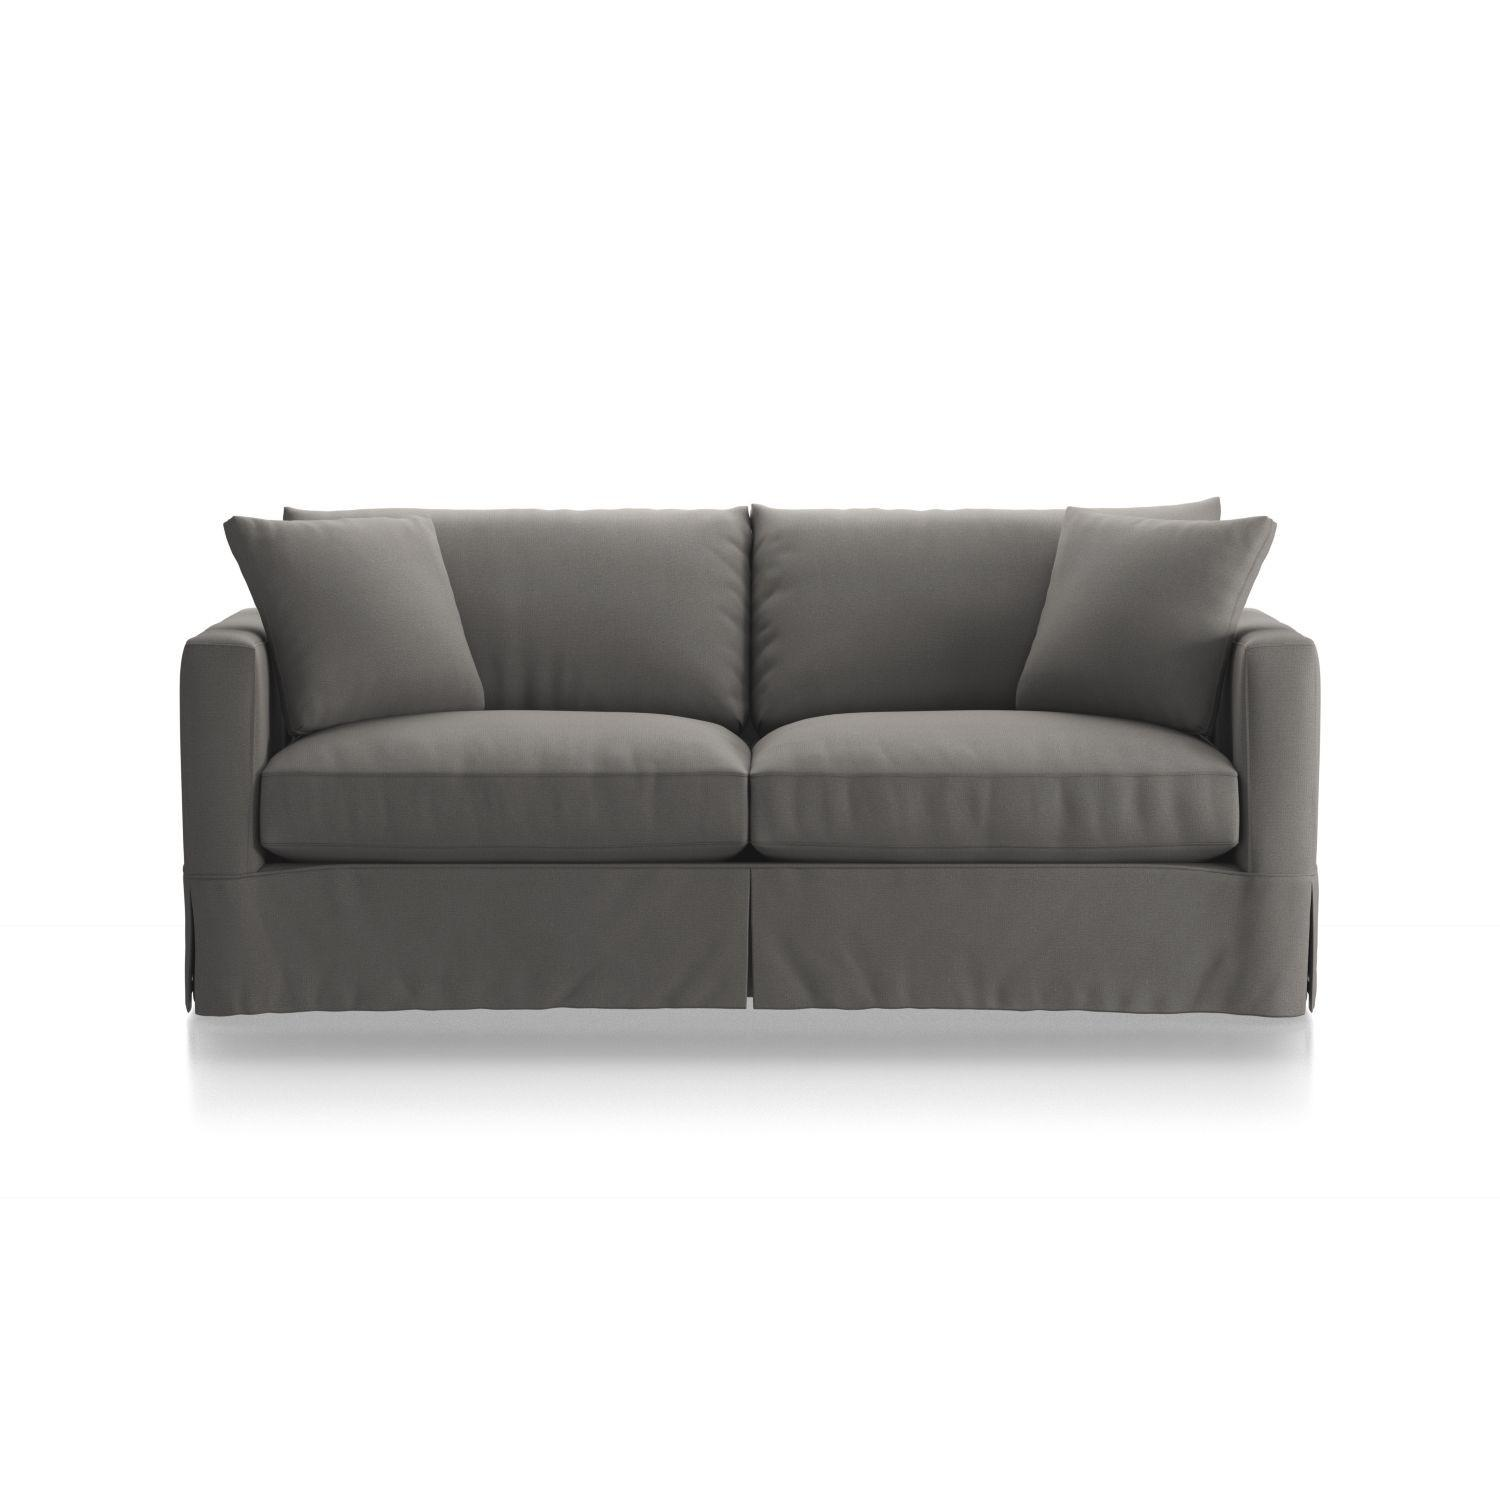 Crate & Barrel Willow Modern Slipcovered Queen Sleeper Sofa